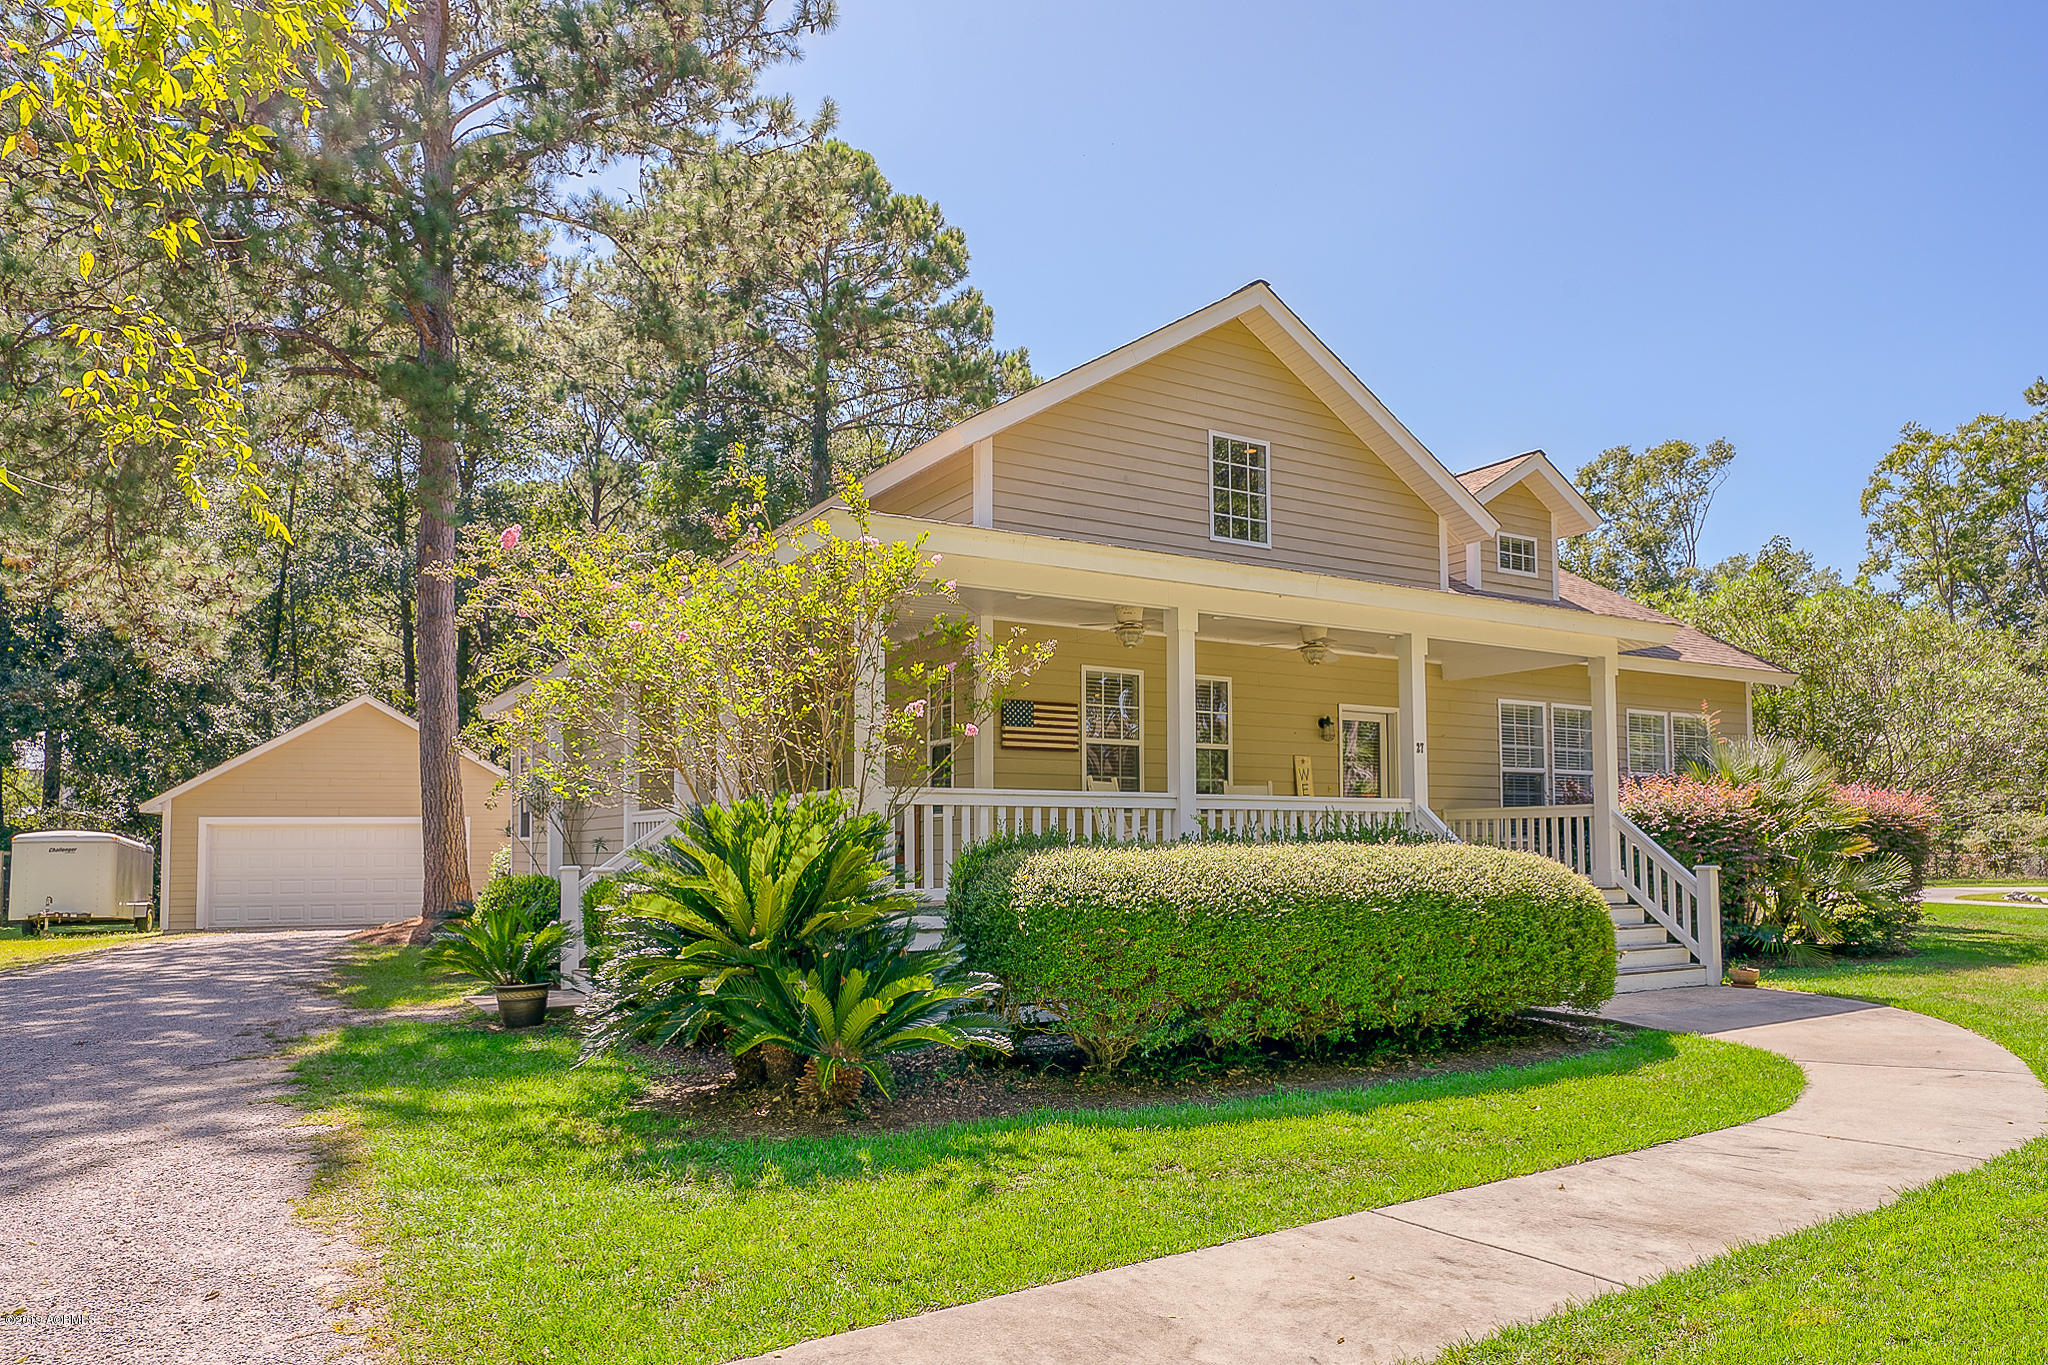 Photo of 27 E River Drive, Beaufort, SC 29907